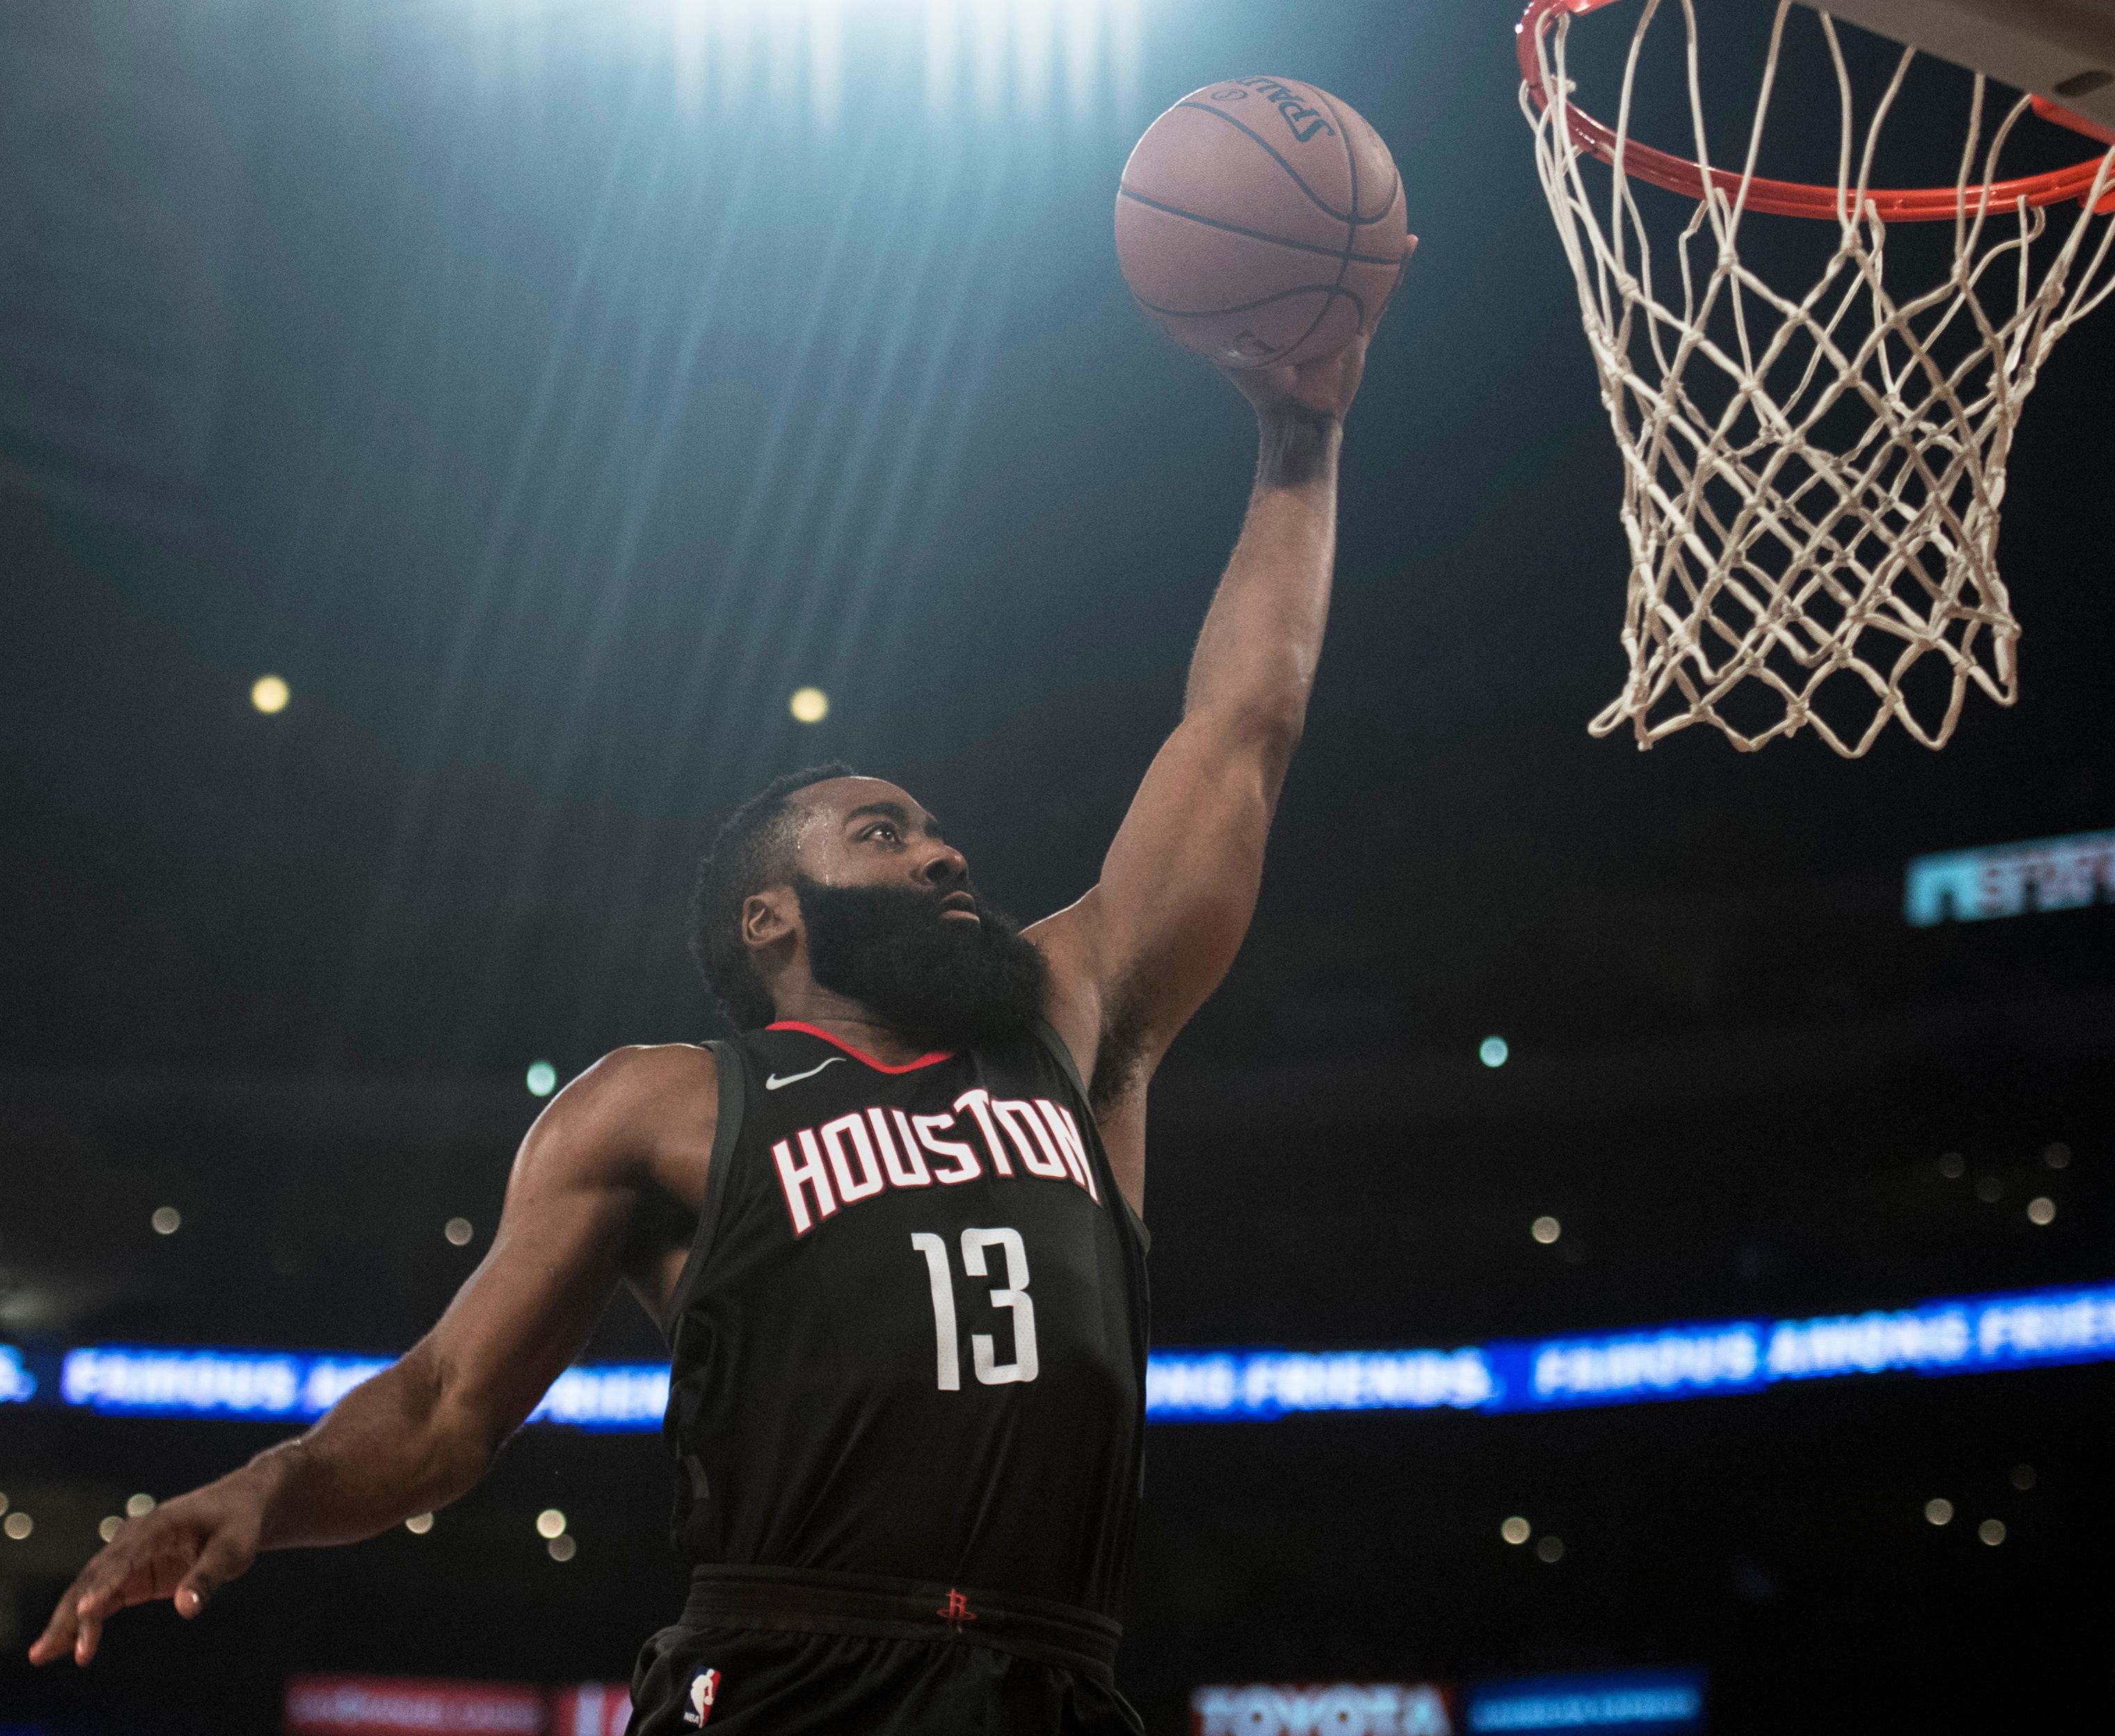 Houston Rockets guard James Harden goes up for a dunk during the first half of an NBA basketball game against the Los Angeles Lakers on Sunday, Dec. 3, 2017, in Los Angeles. (AP Photo/Kyusung Gong)